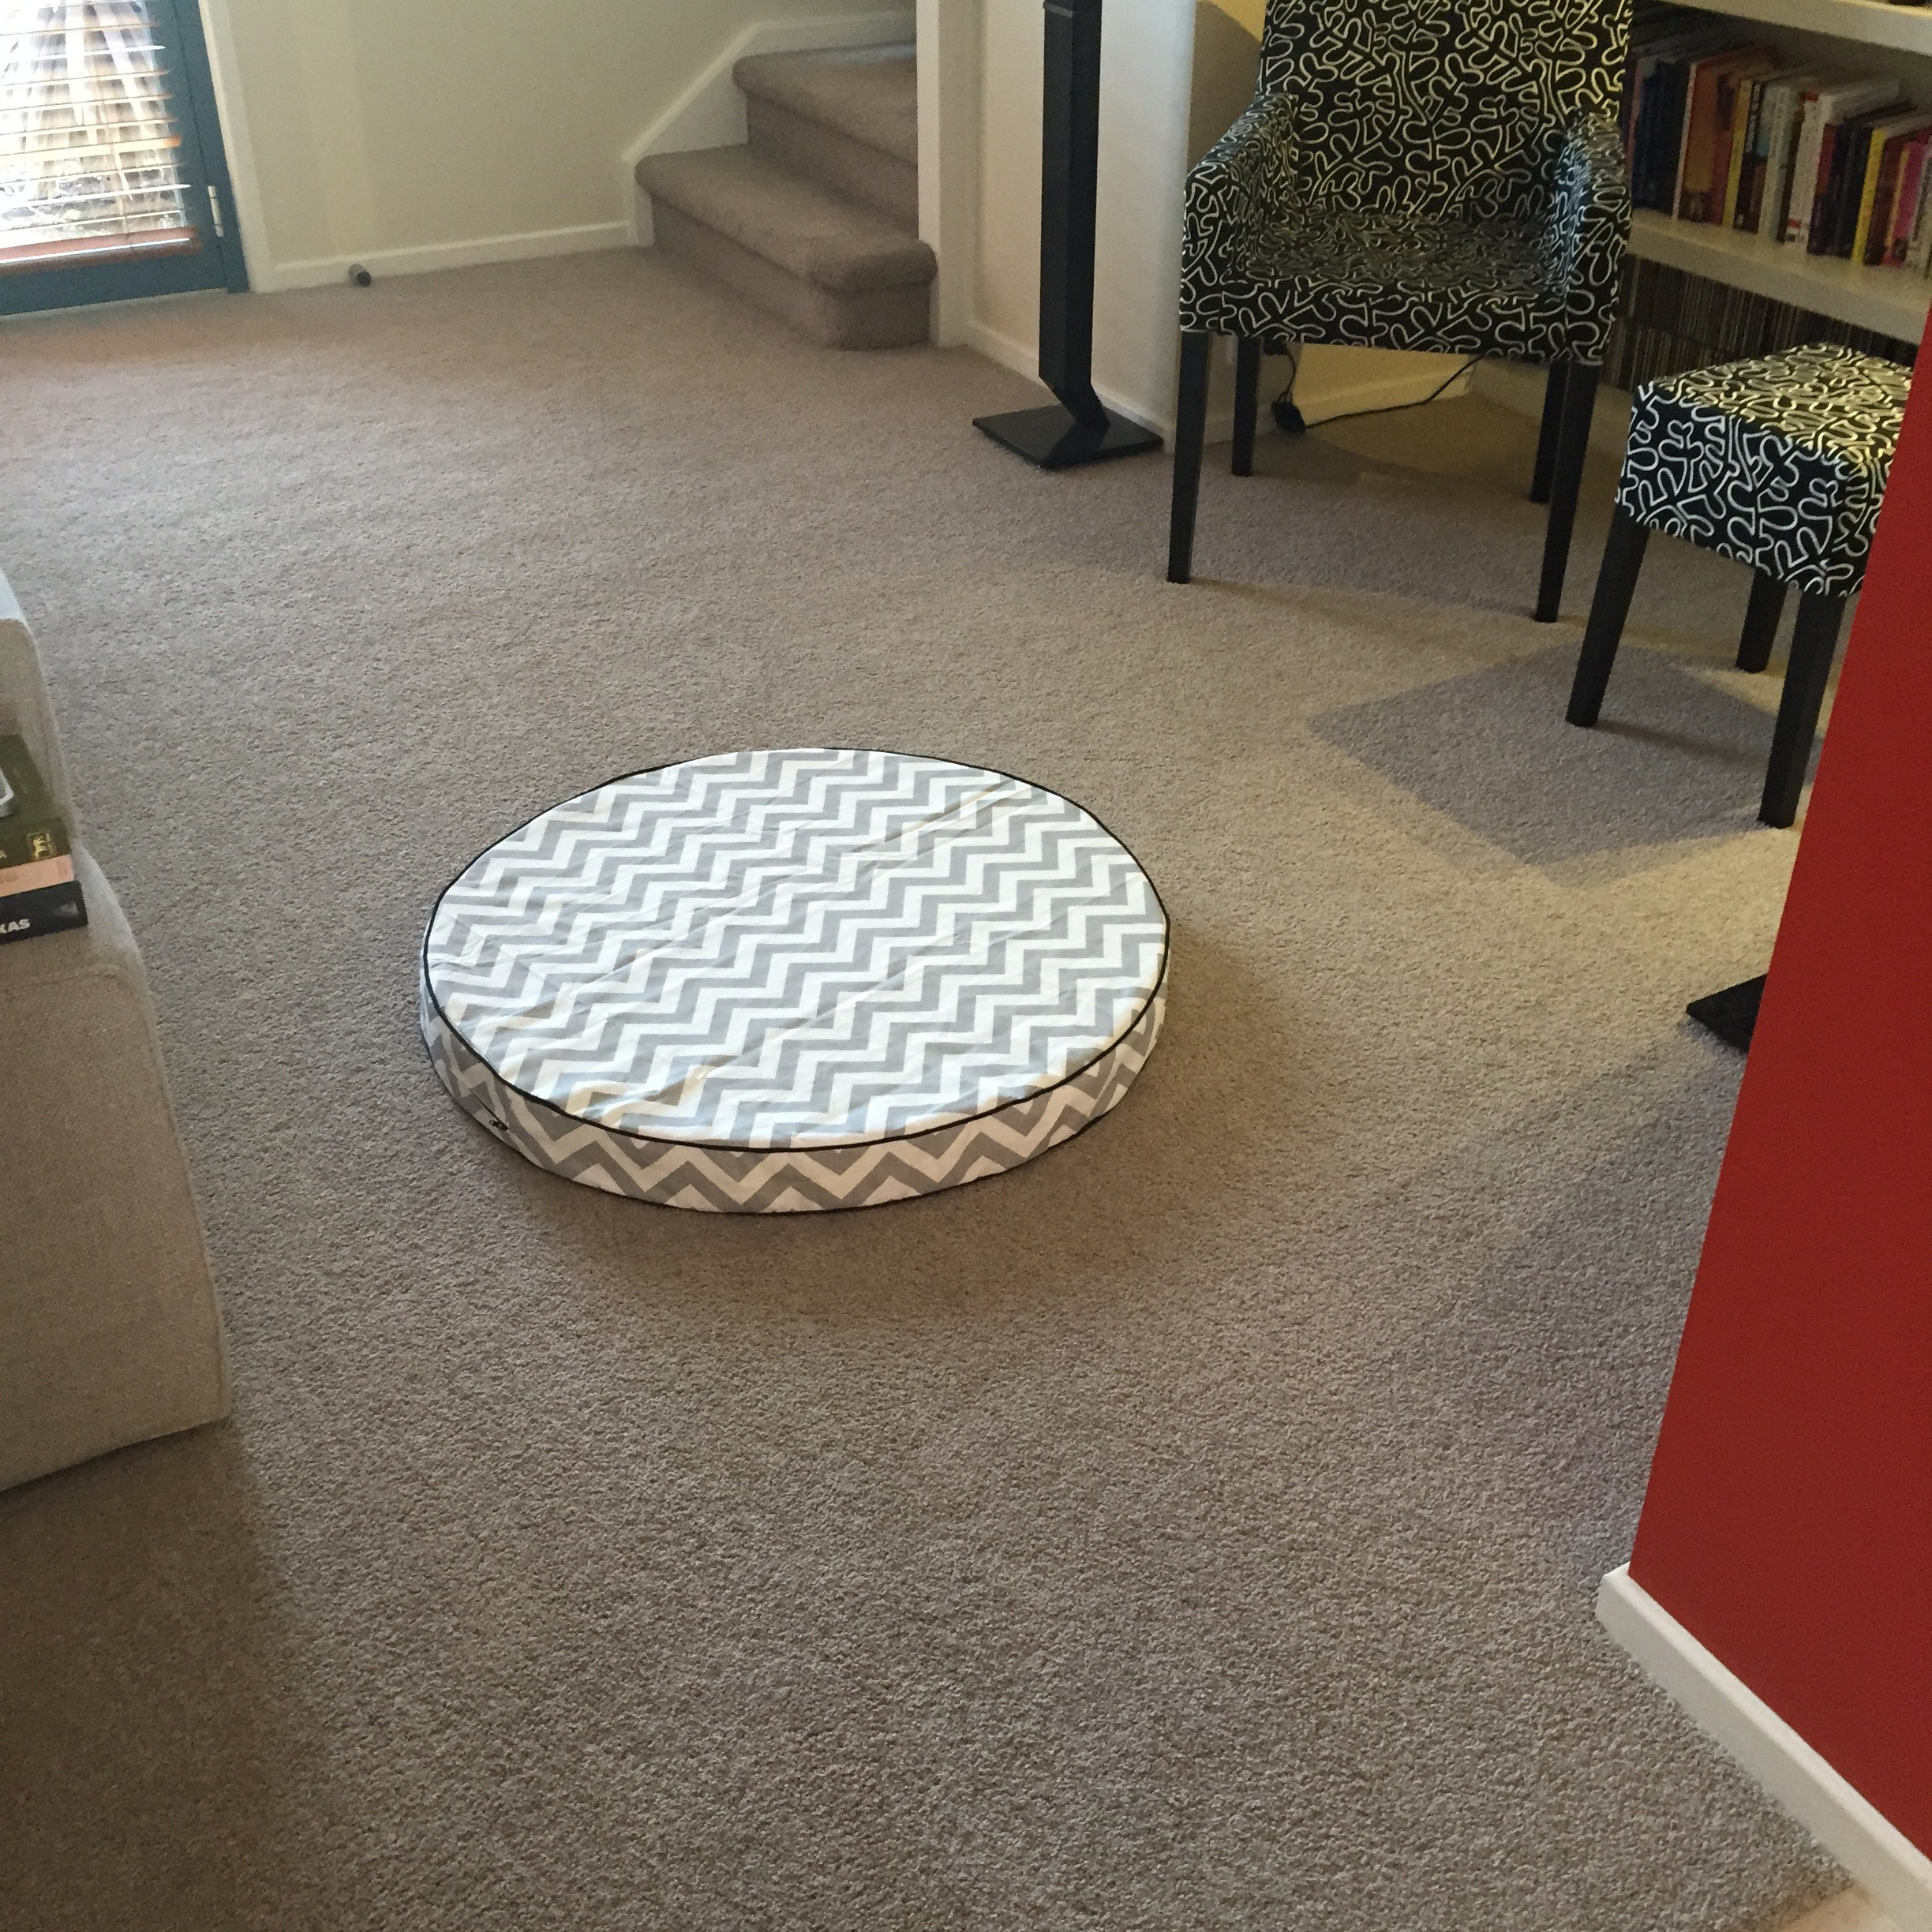 Sew: Round Dog Bed or Floor Cushion Tutorial {Foam Filled w Side Gussets, Piping & Zipper}